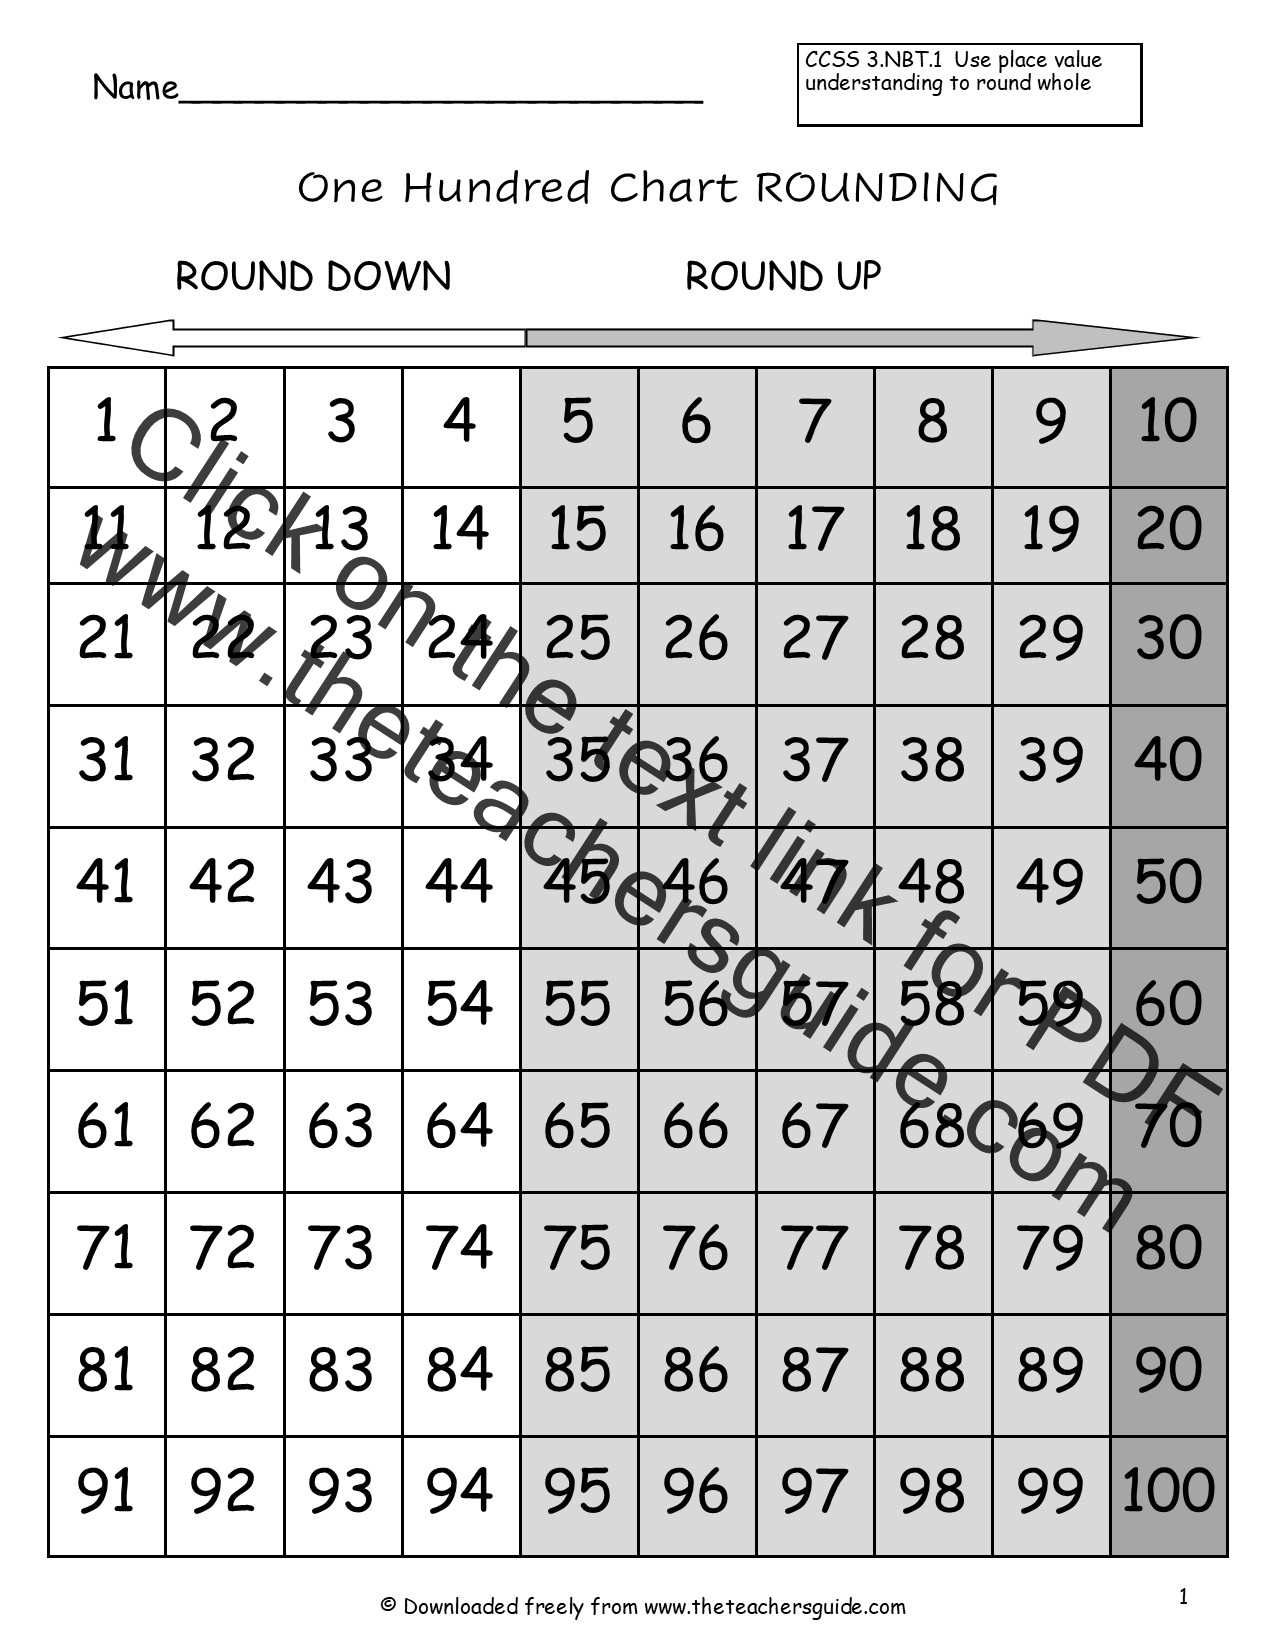 Rounding Whole Numbers Worksheets from The Teachers Guide – Rounding Whole Numbers Worksheets